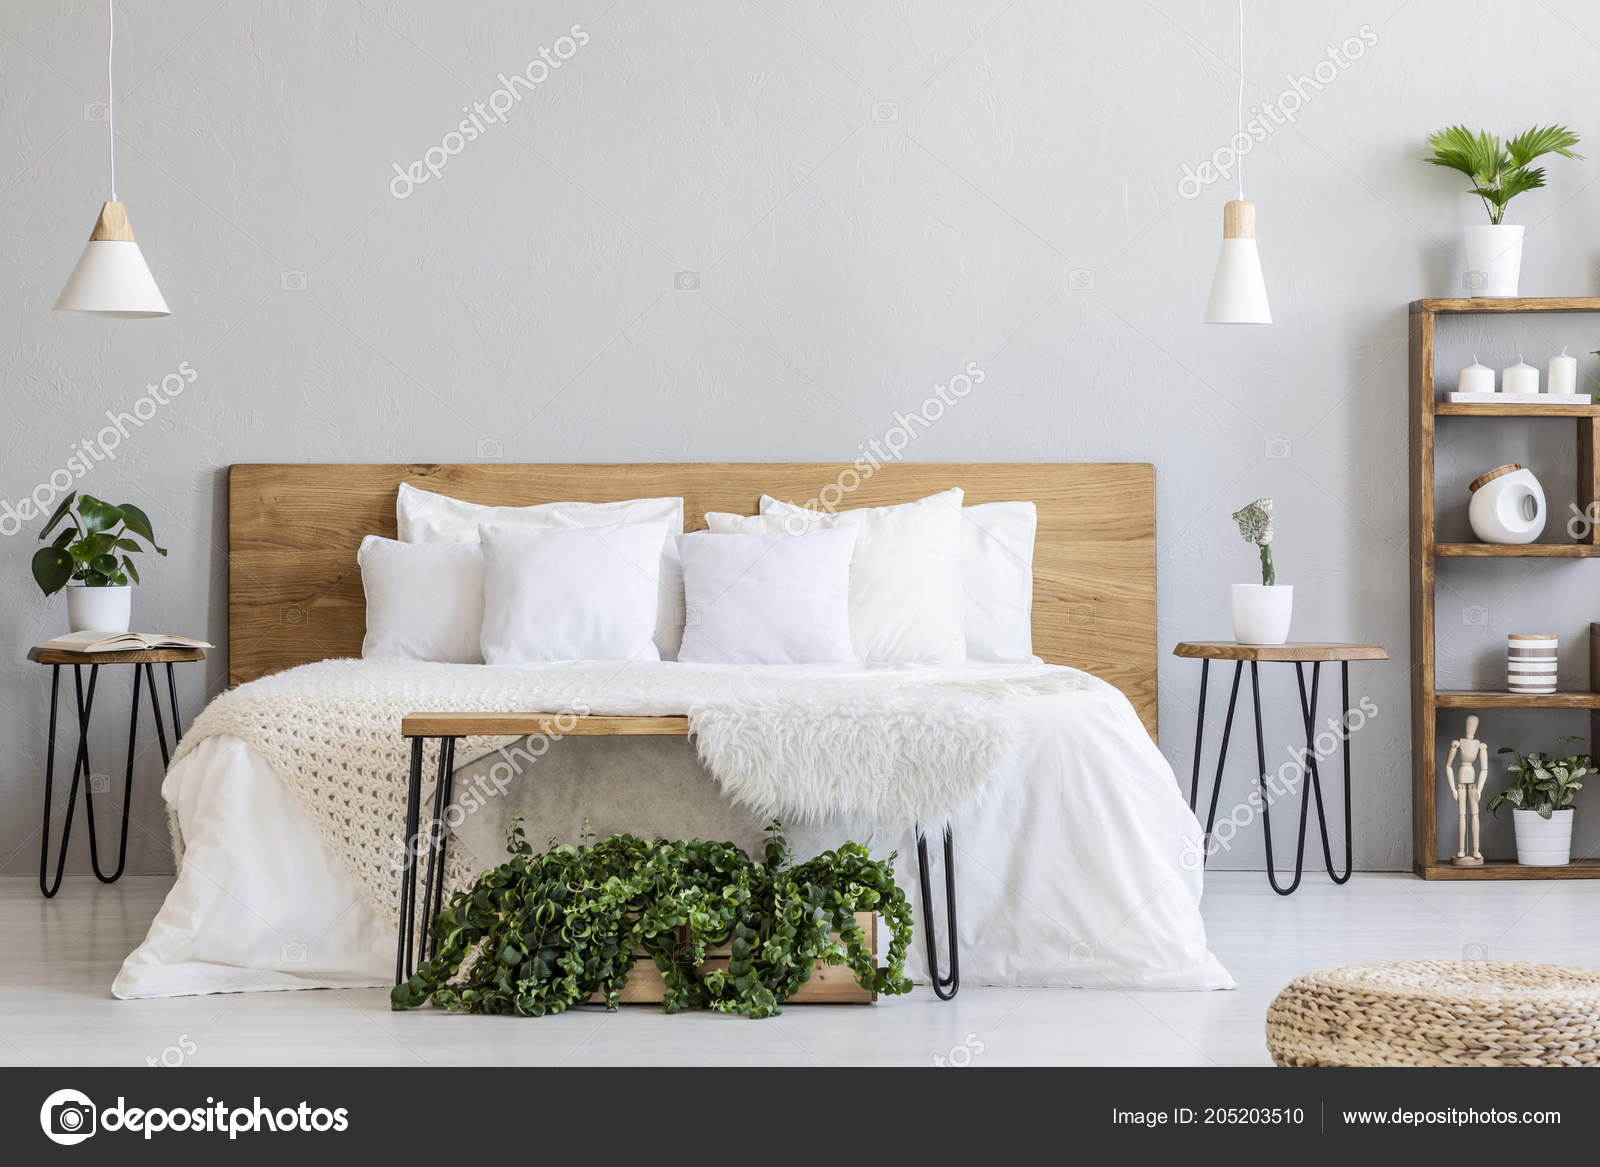 Lamps Wooden Bed White Sheets Grey Bedroom Interior Pouf Plants Stock Photo Image By C Photographee Eu 205203510